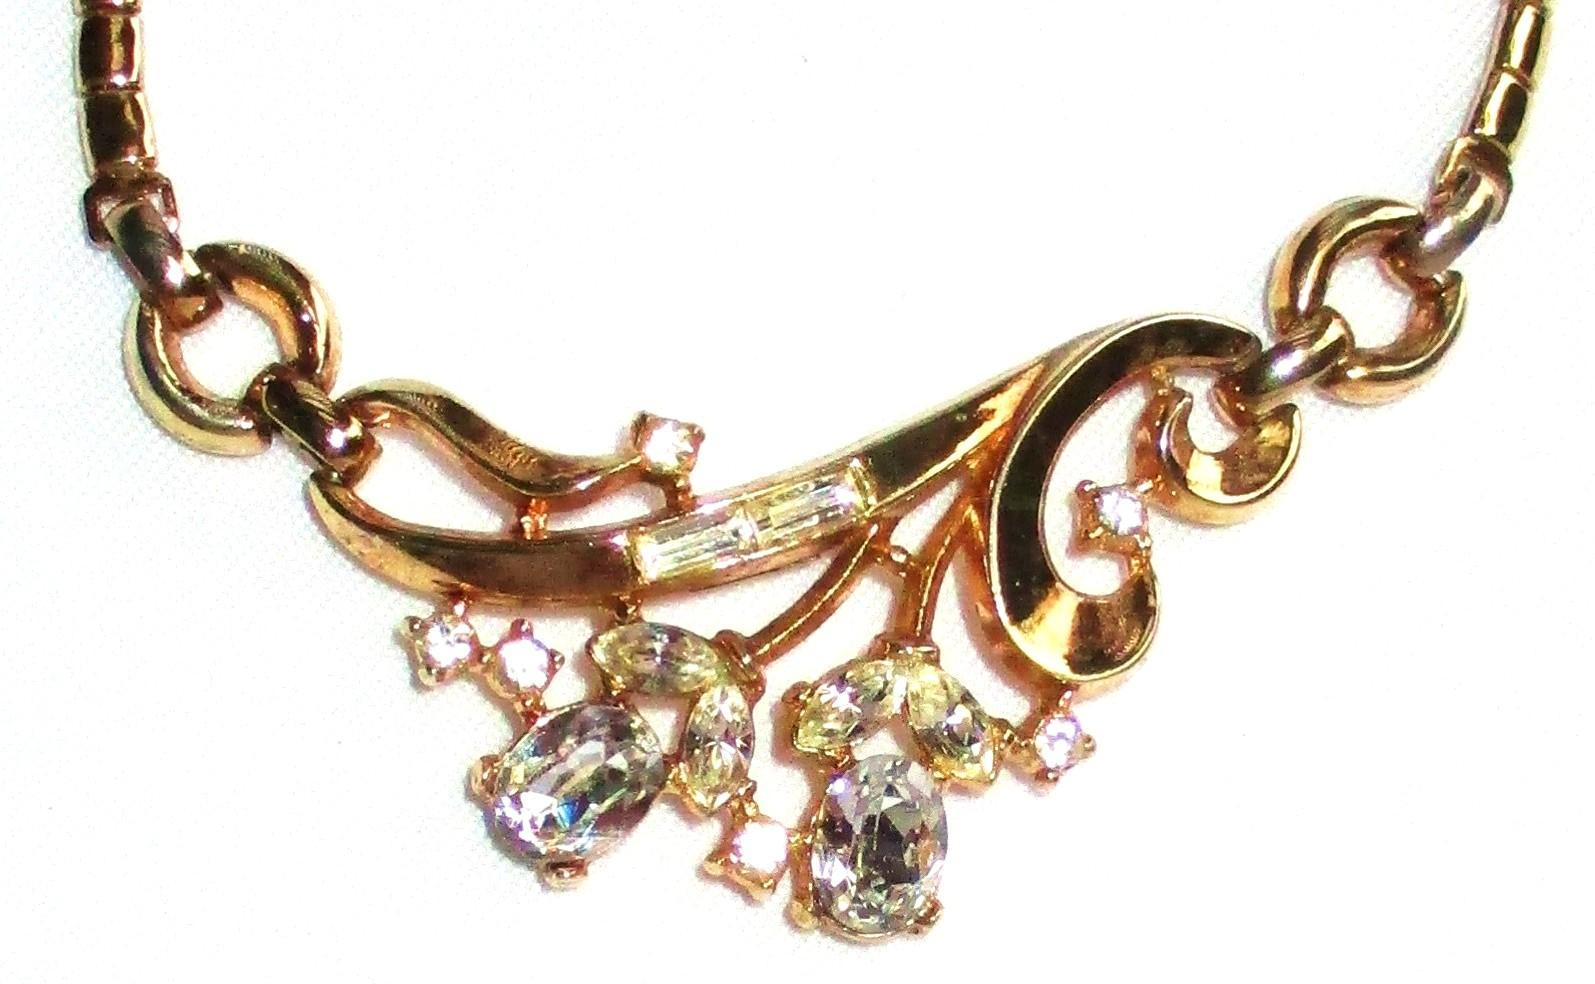 Vintage Trifari Goldtone Rhinestone Necklace